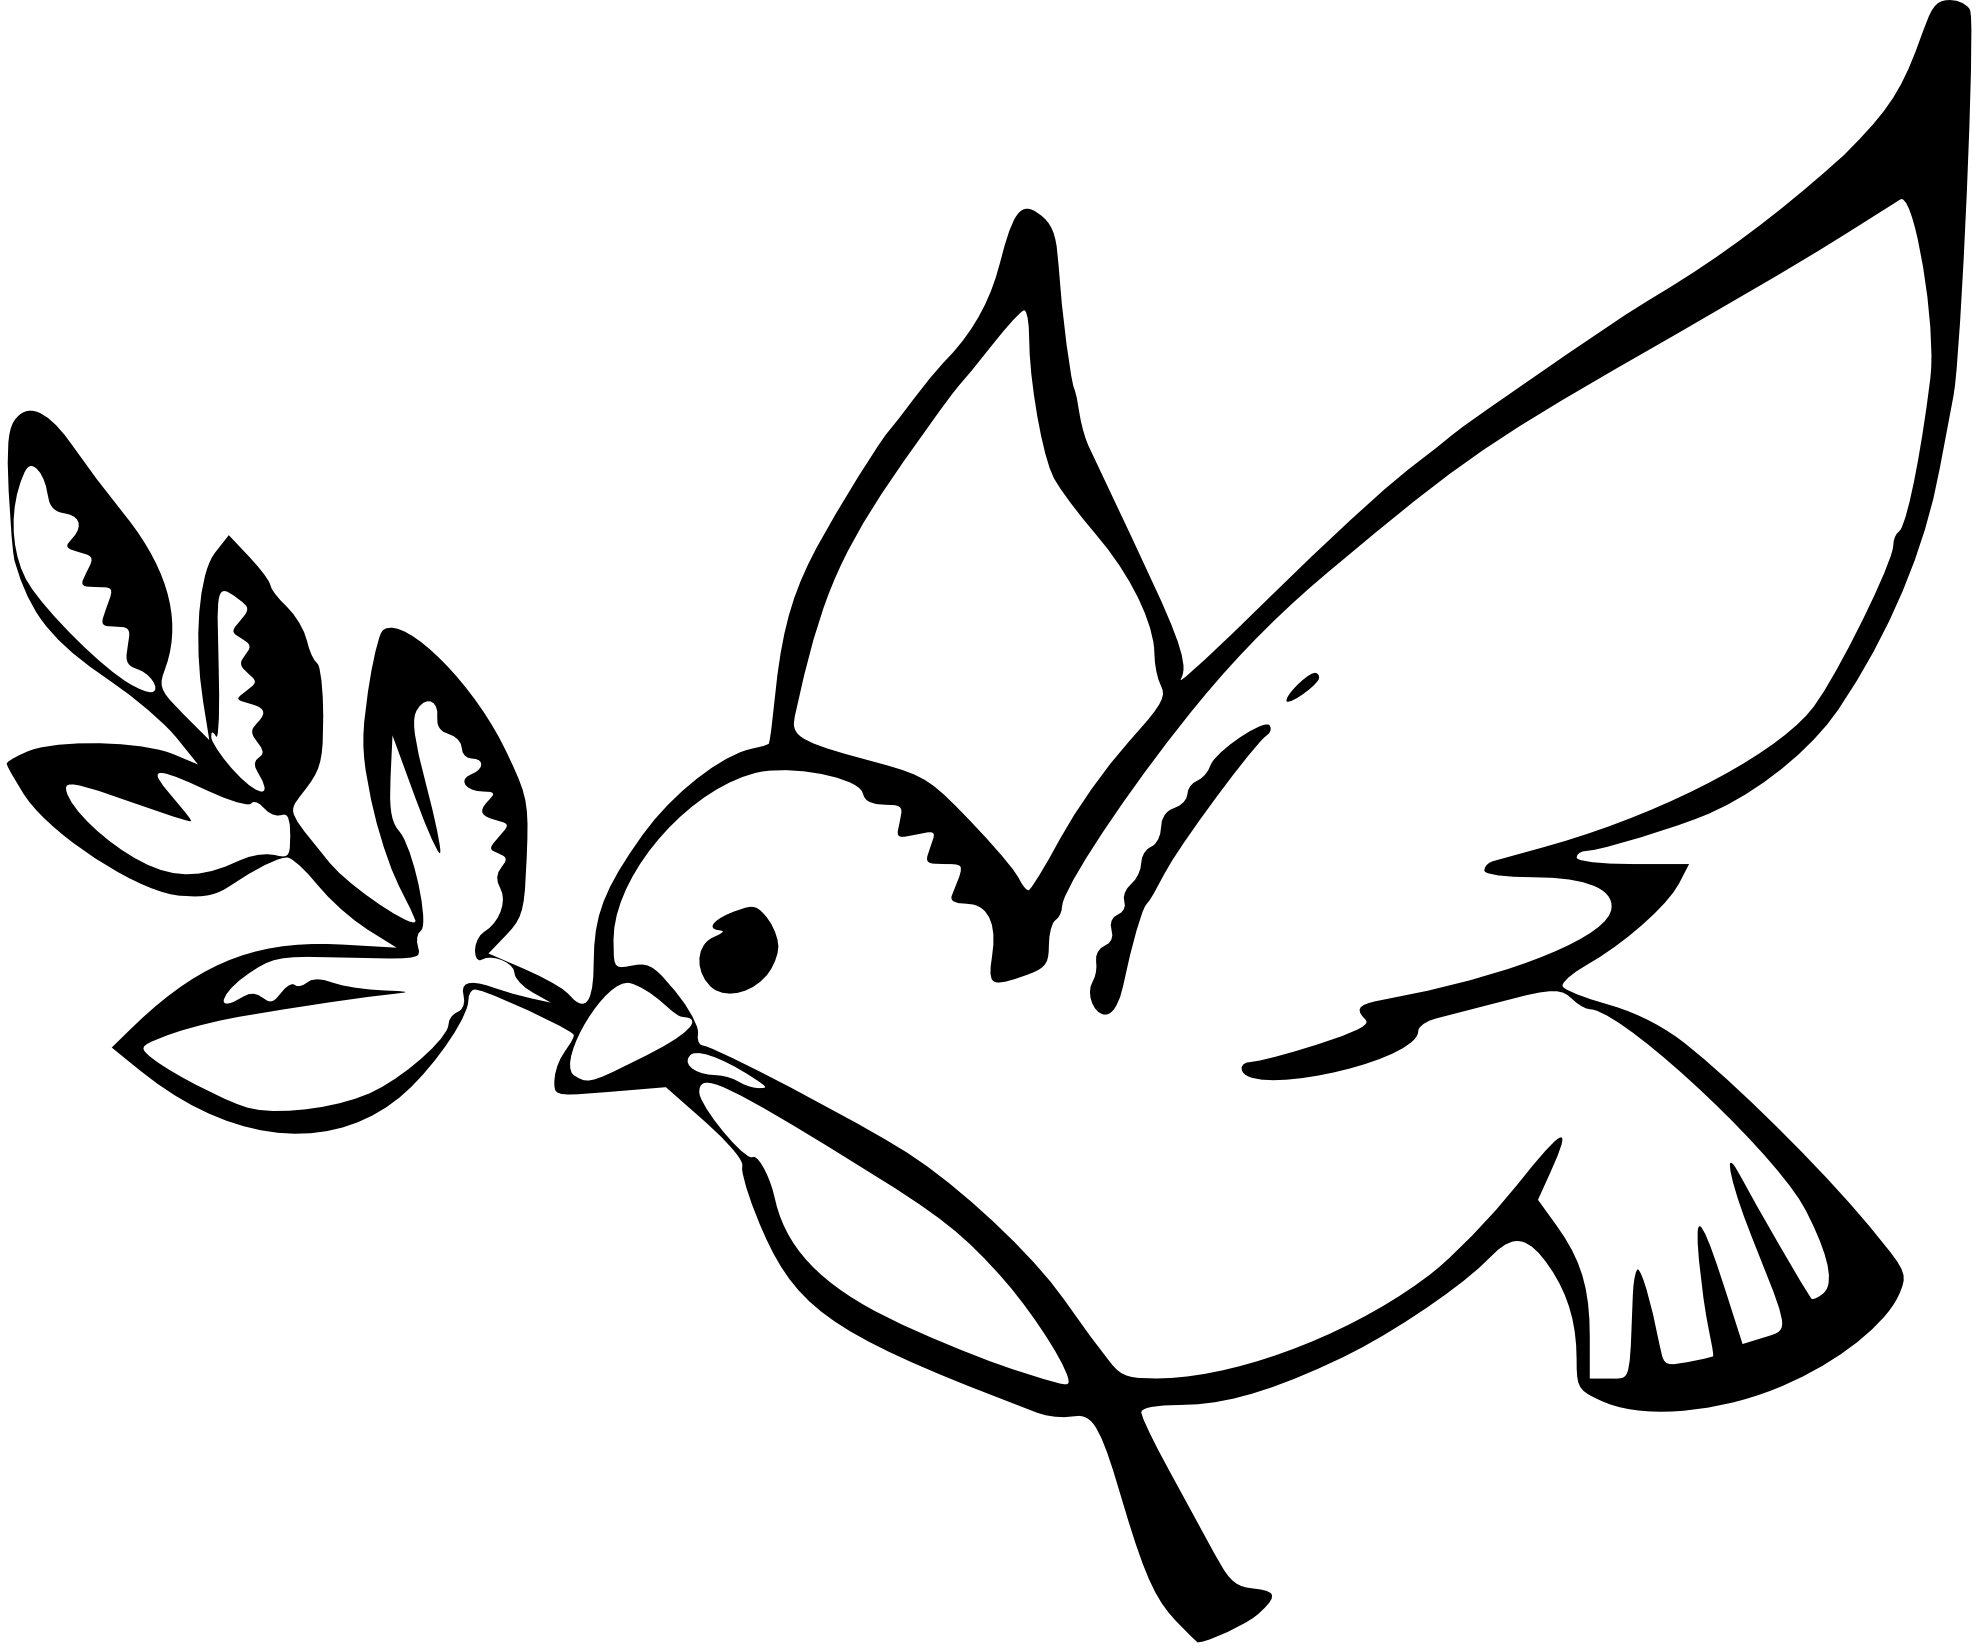 Nativity drawings dove peace. Clipart pencil simple